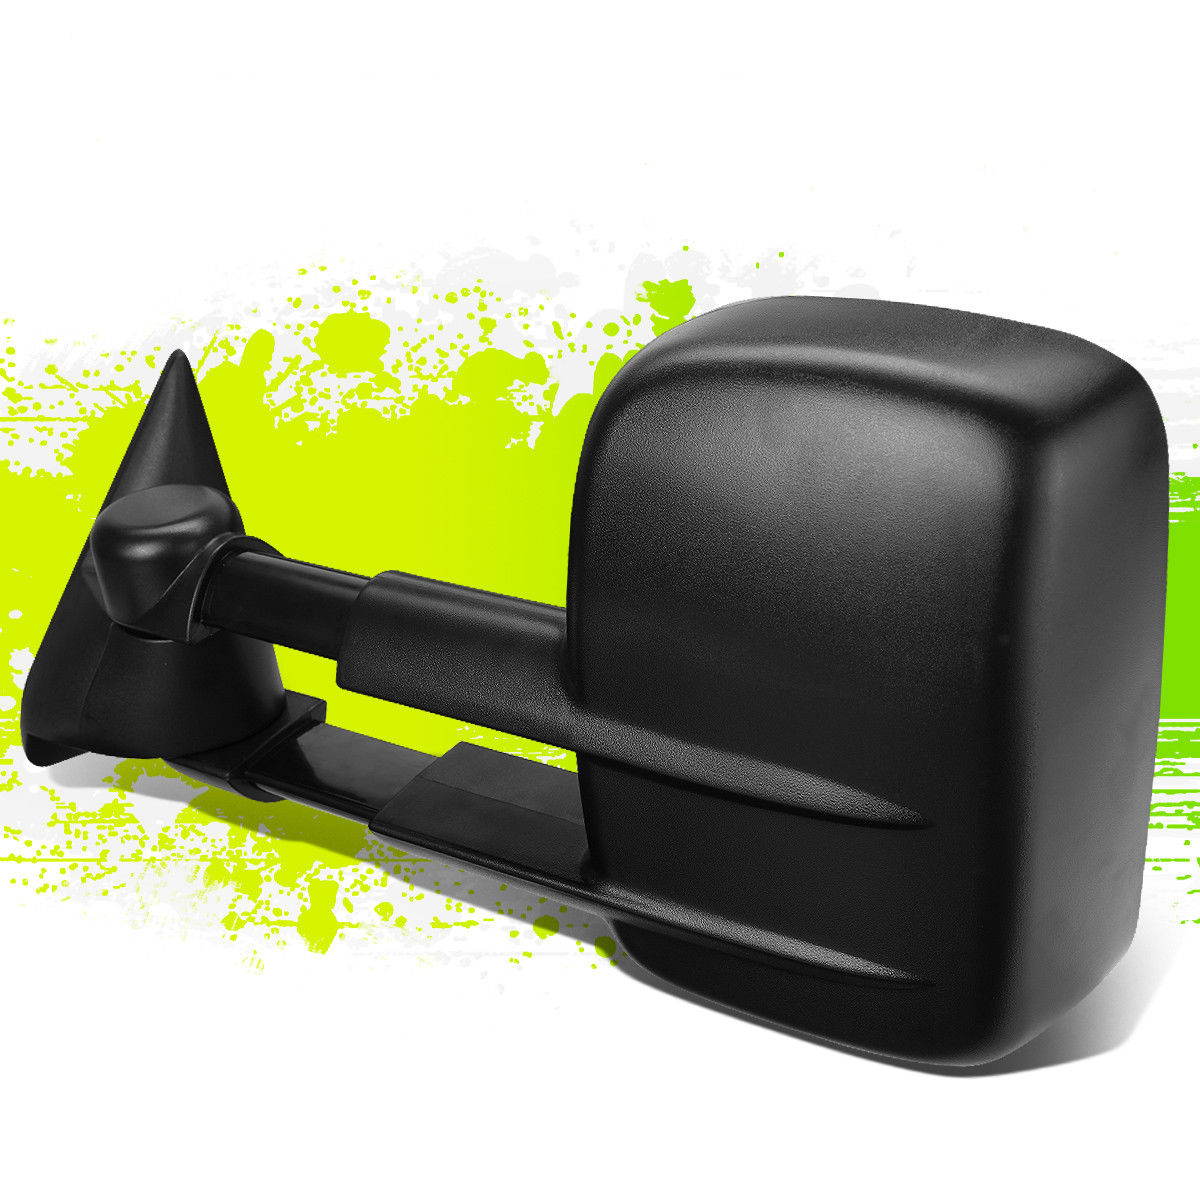 ミラー DRIVER SIDE MANUAL ADJUSTMENT TOWING MIRROR FOR 99-06 CHEVY SILVERADO/GMC SIERRA ドライバー側マニュアル99-06チベットシルベラド/ GMC SIERRA